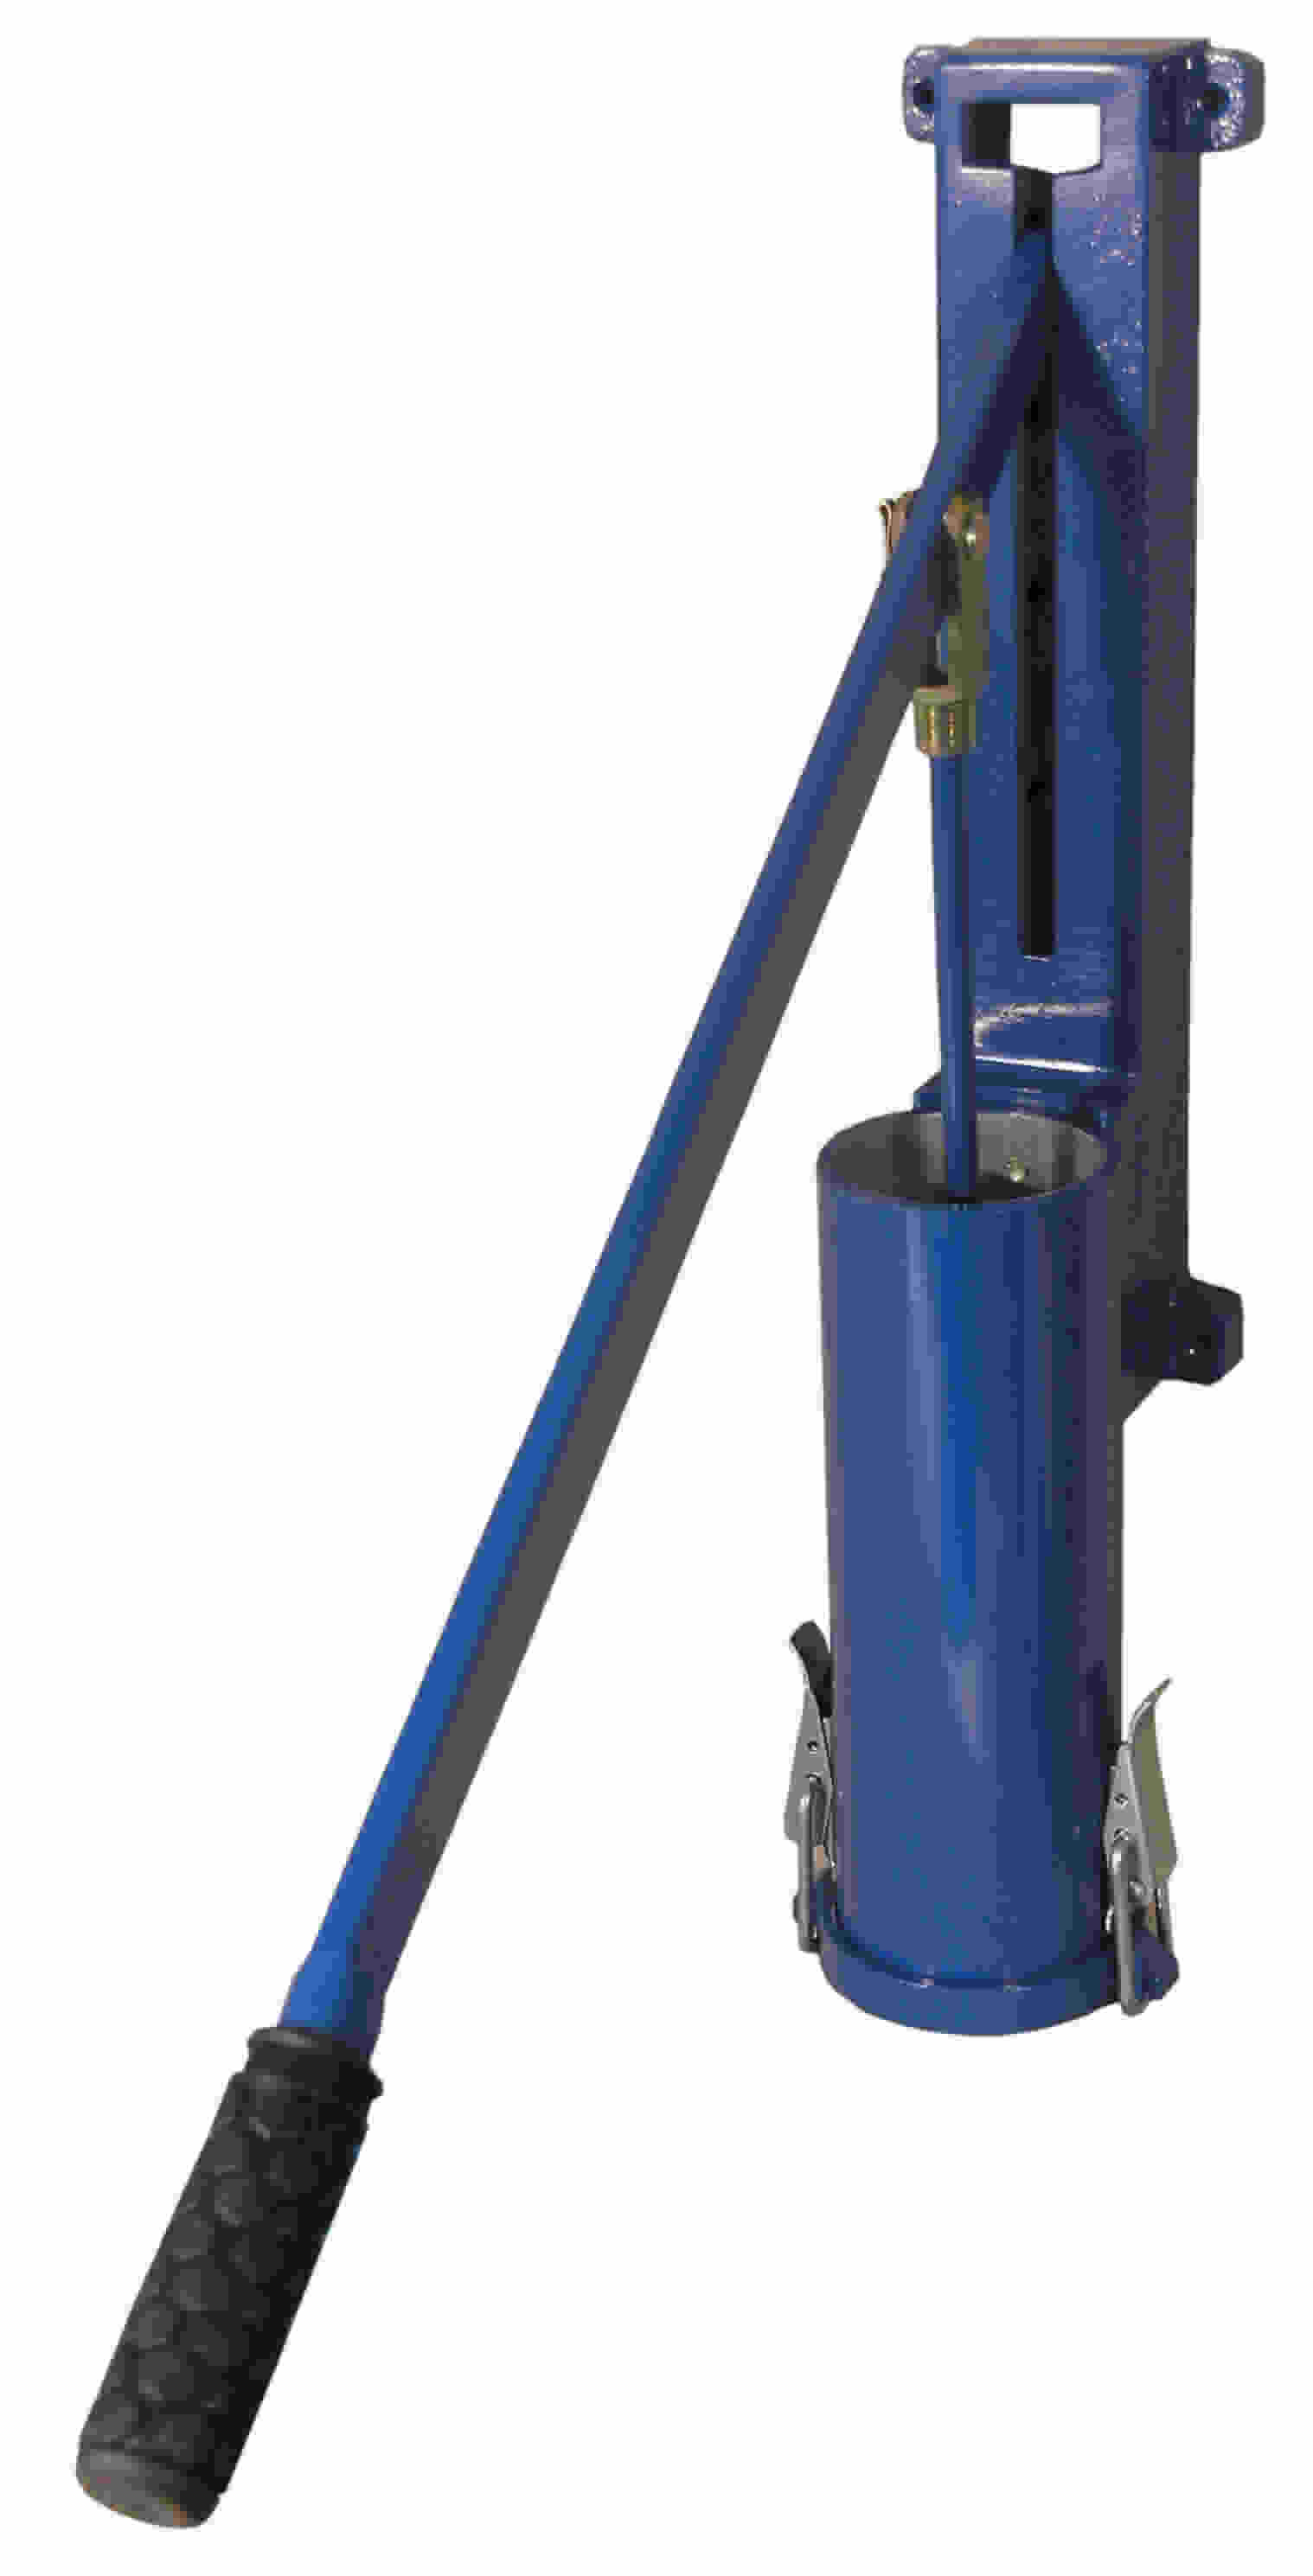 3 Inch Clay Extruder